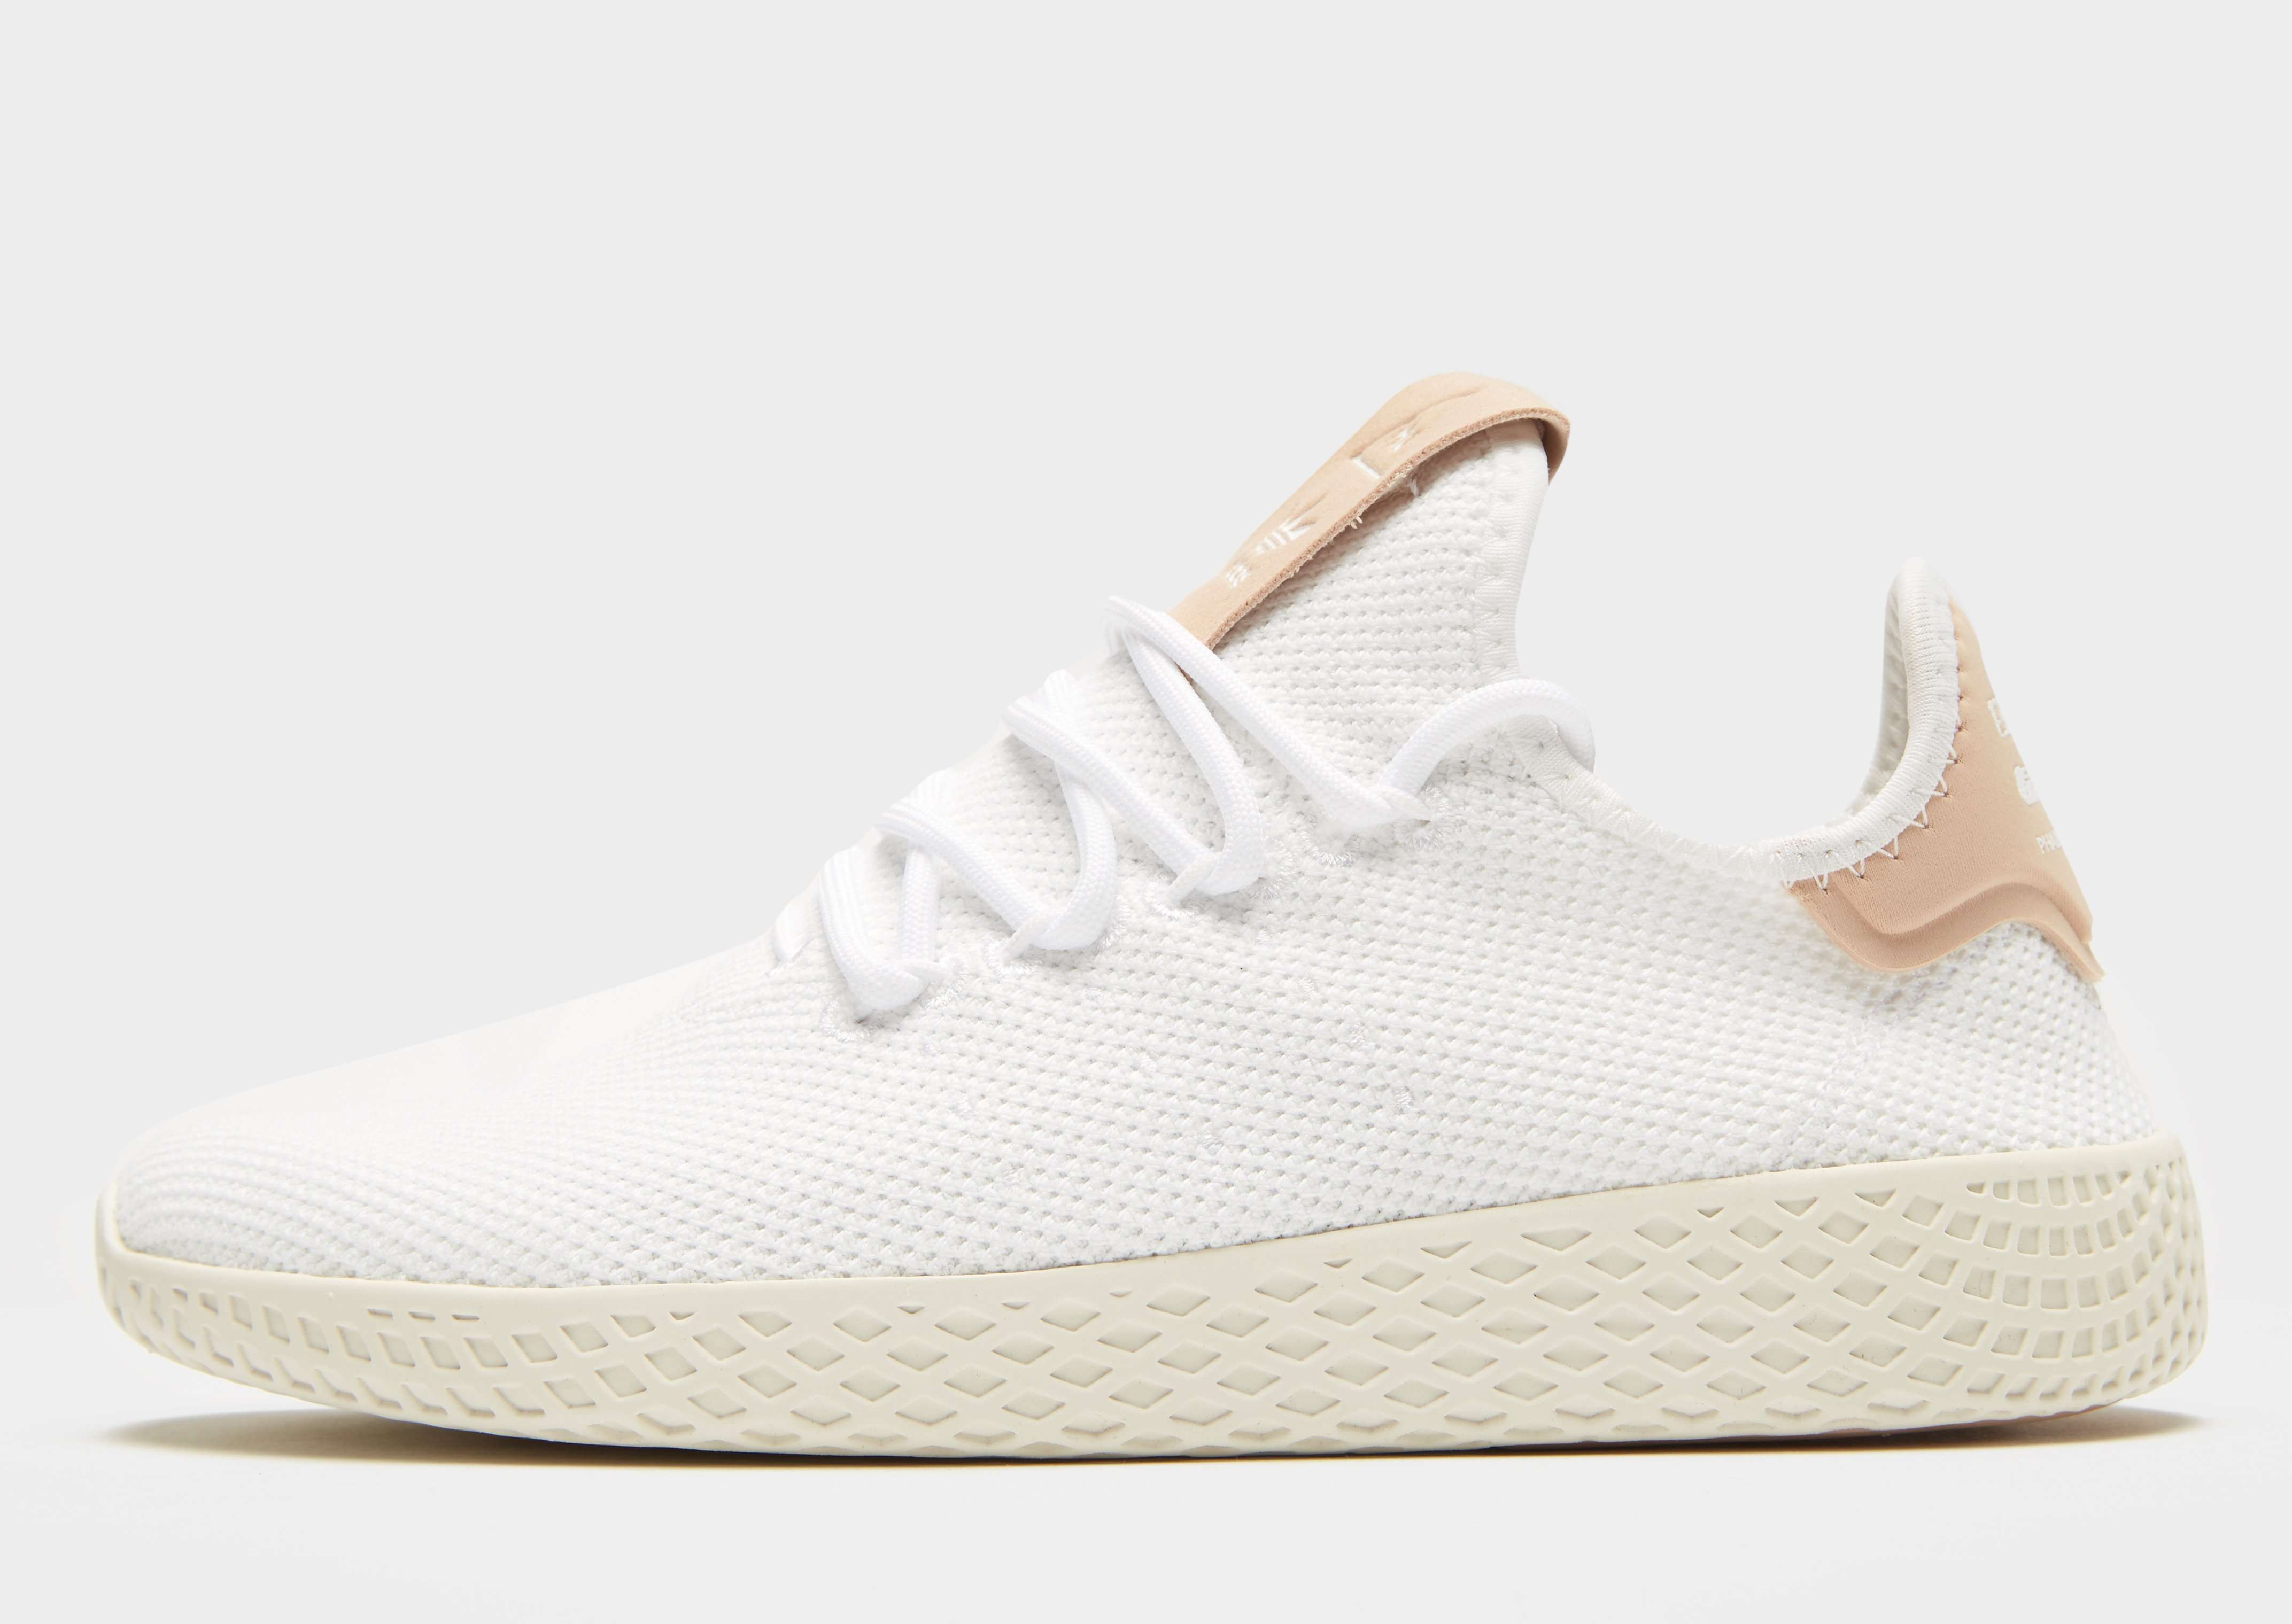 d47a2f01c4124 Another Shoe added to The Rotation Pharrell Tennis Hu Nike